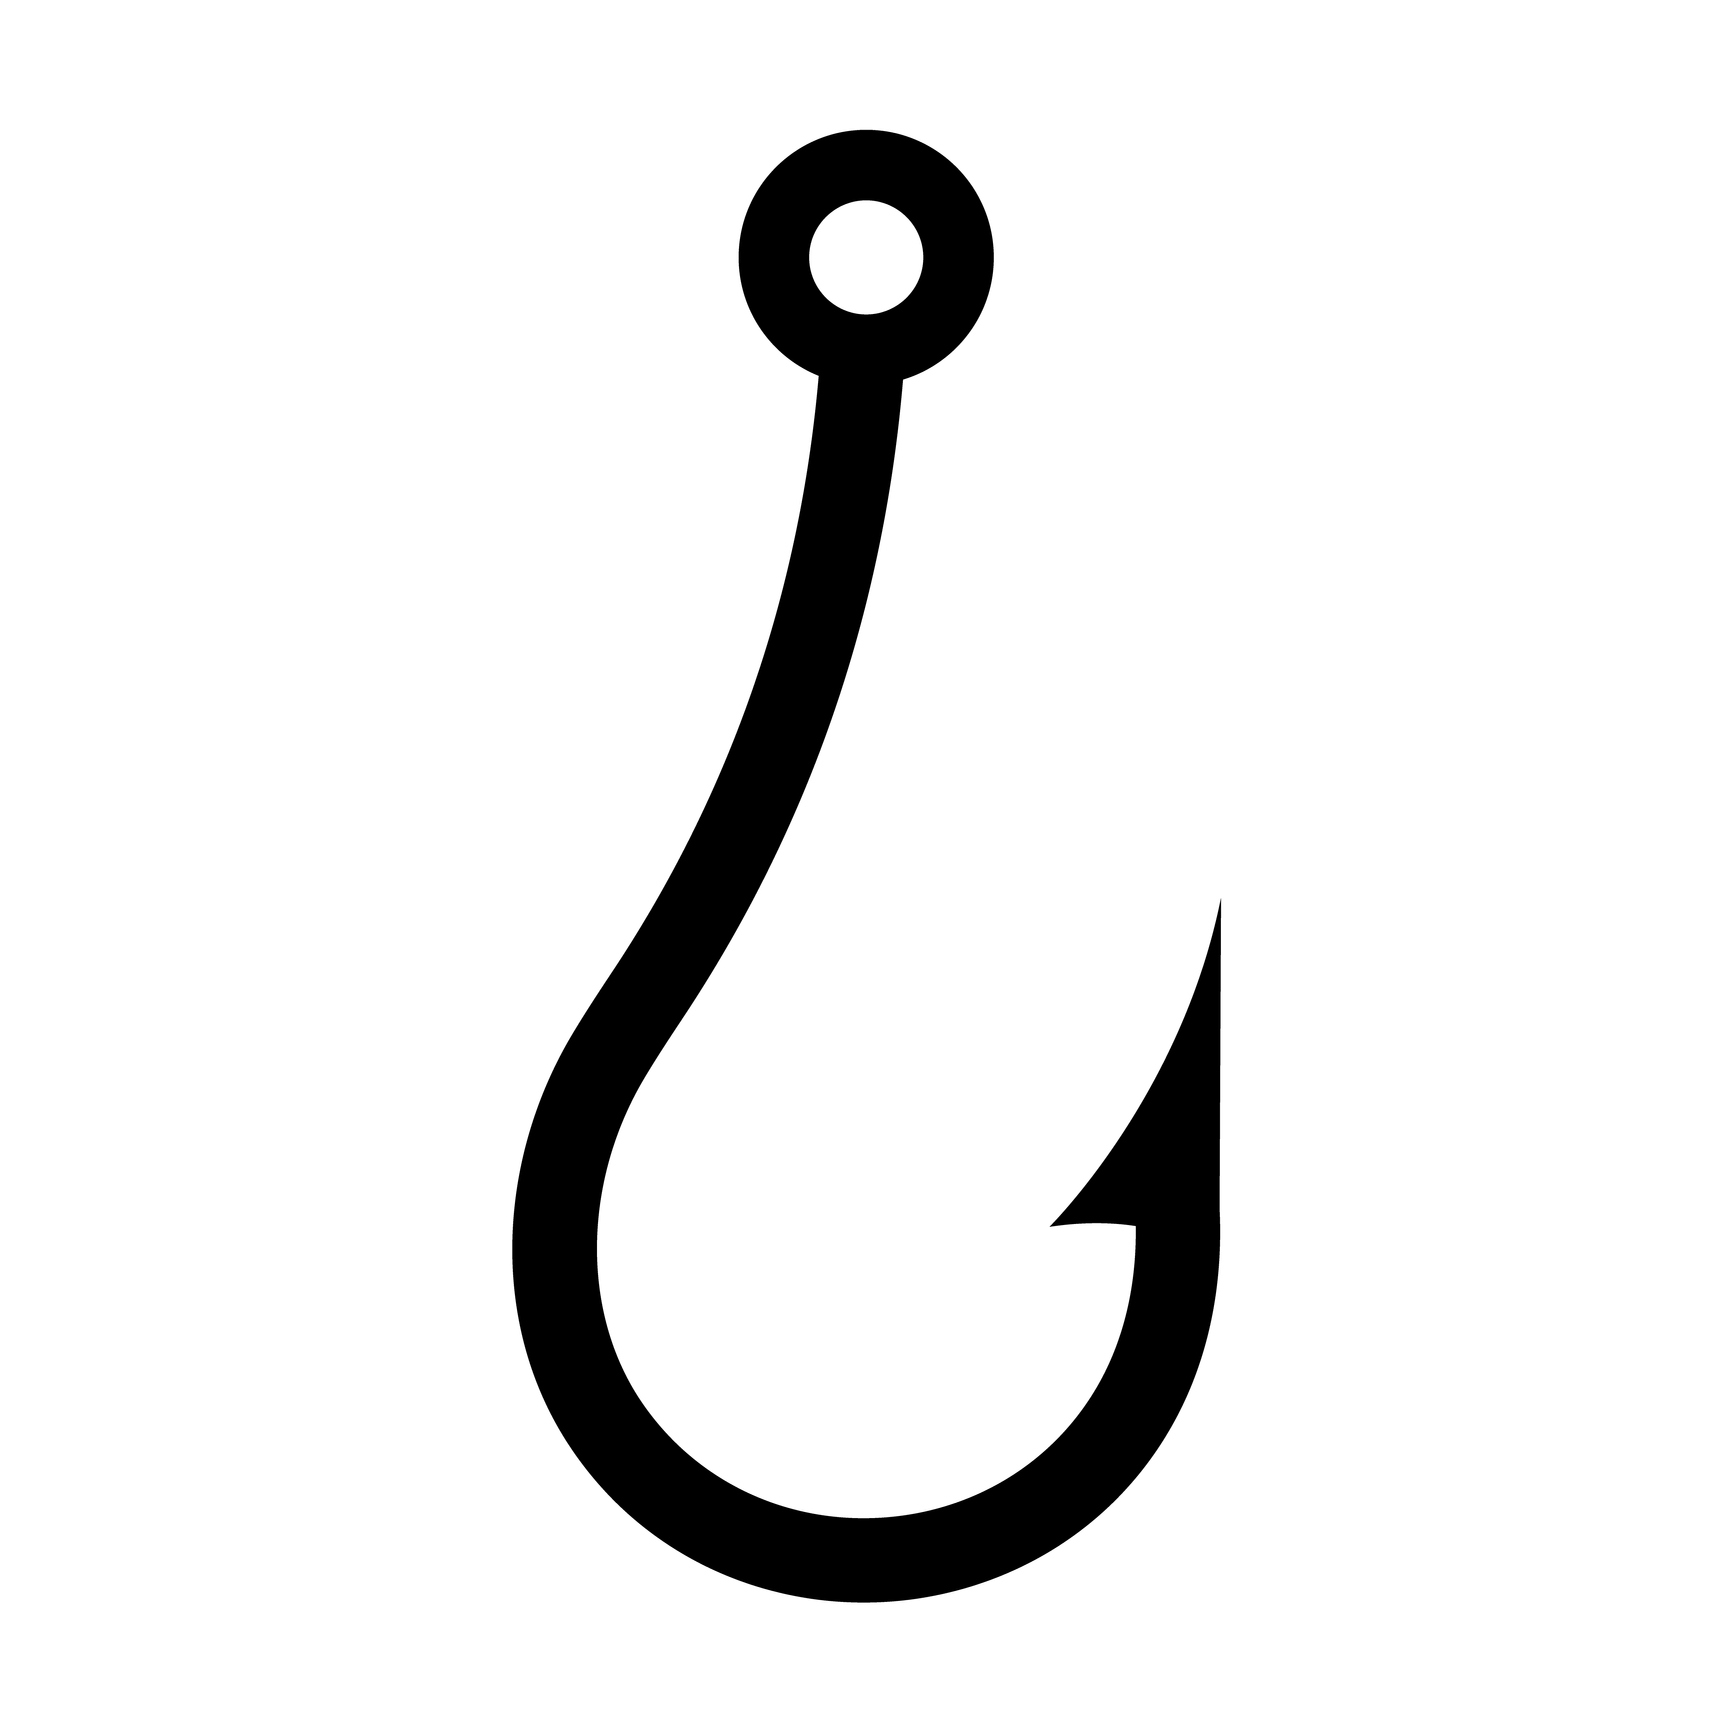 Fishing hook icon, silhouette on white background